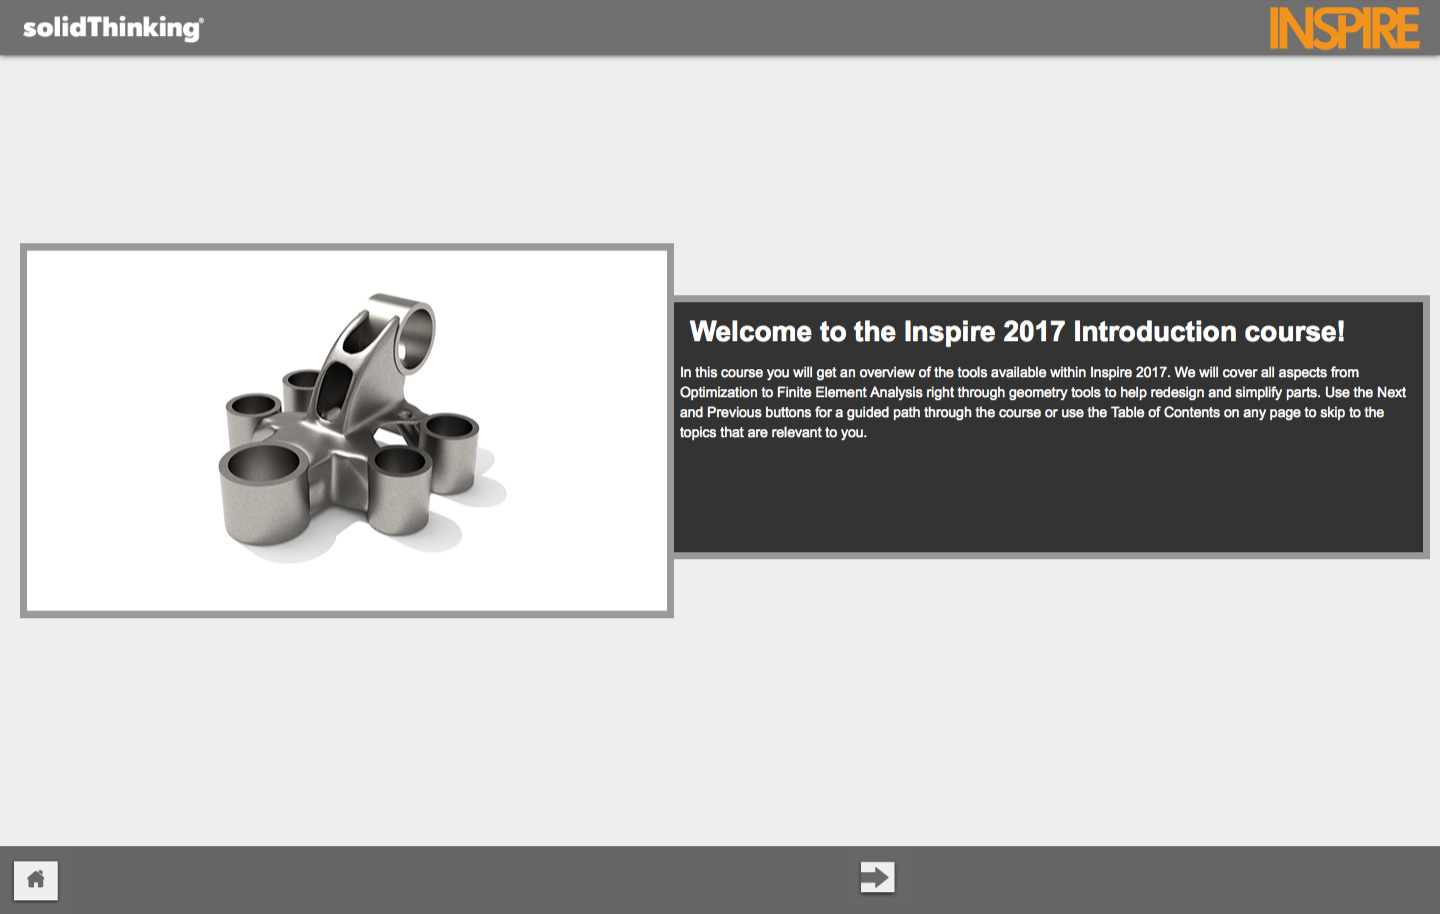 Inspire 2017 Introduction